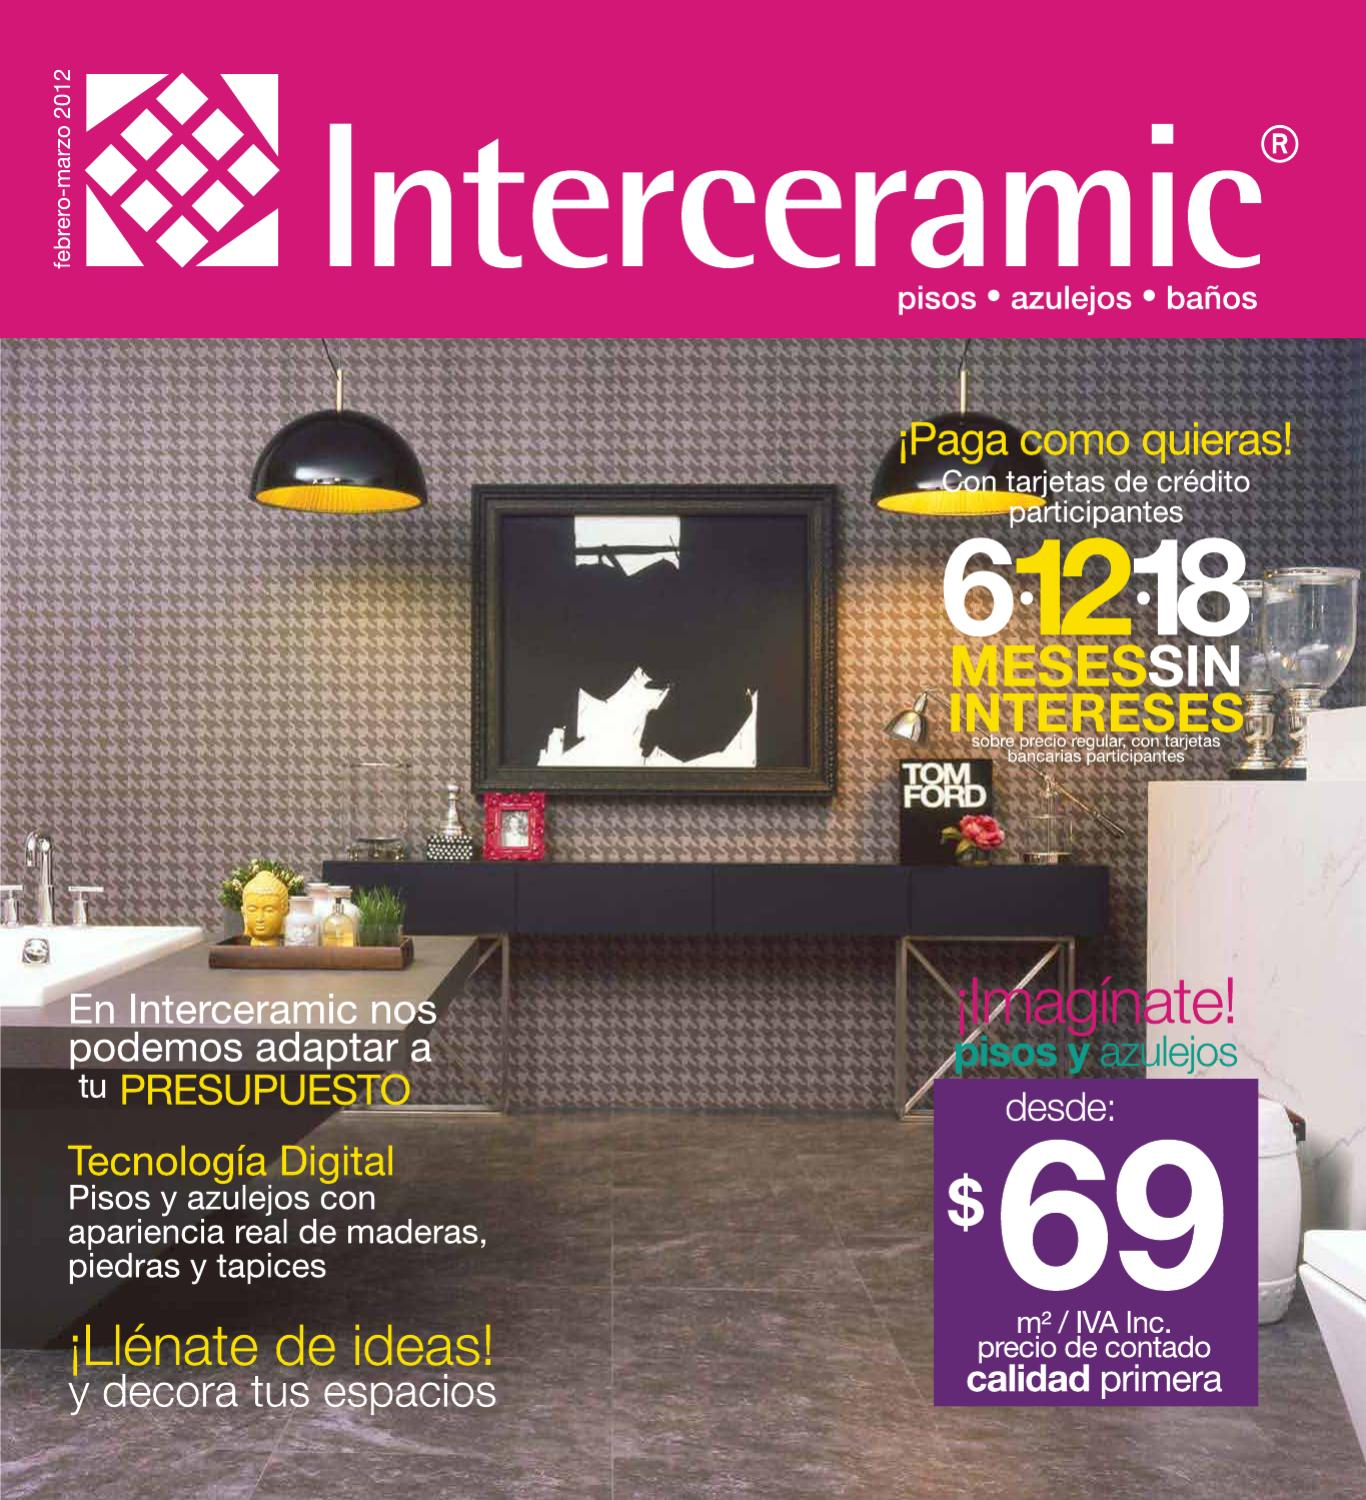 Promociones Interceramic 2012 By William Gonzalez Issuu